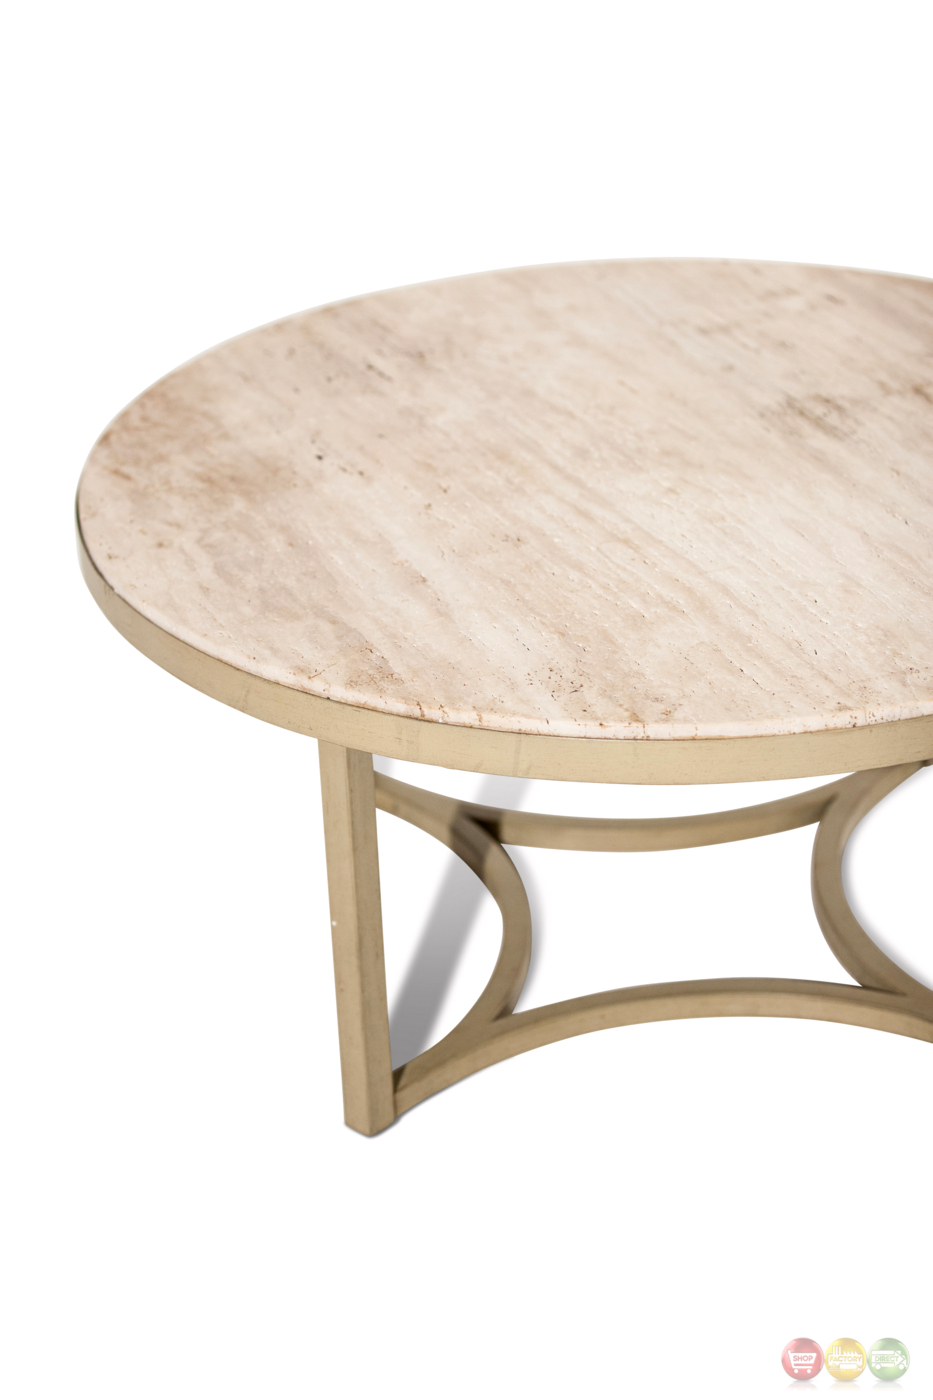 Alta casual round cocktail table with beige travertine Round cocktail table